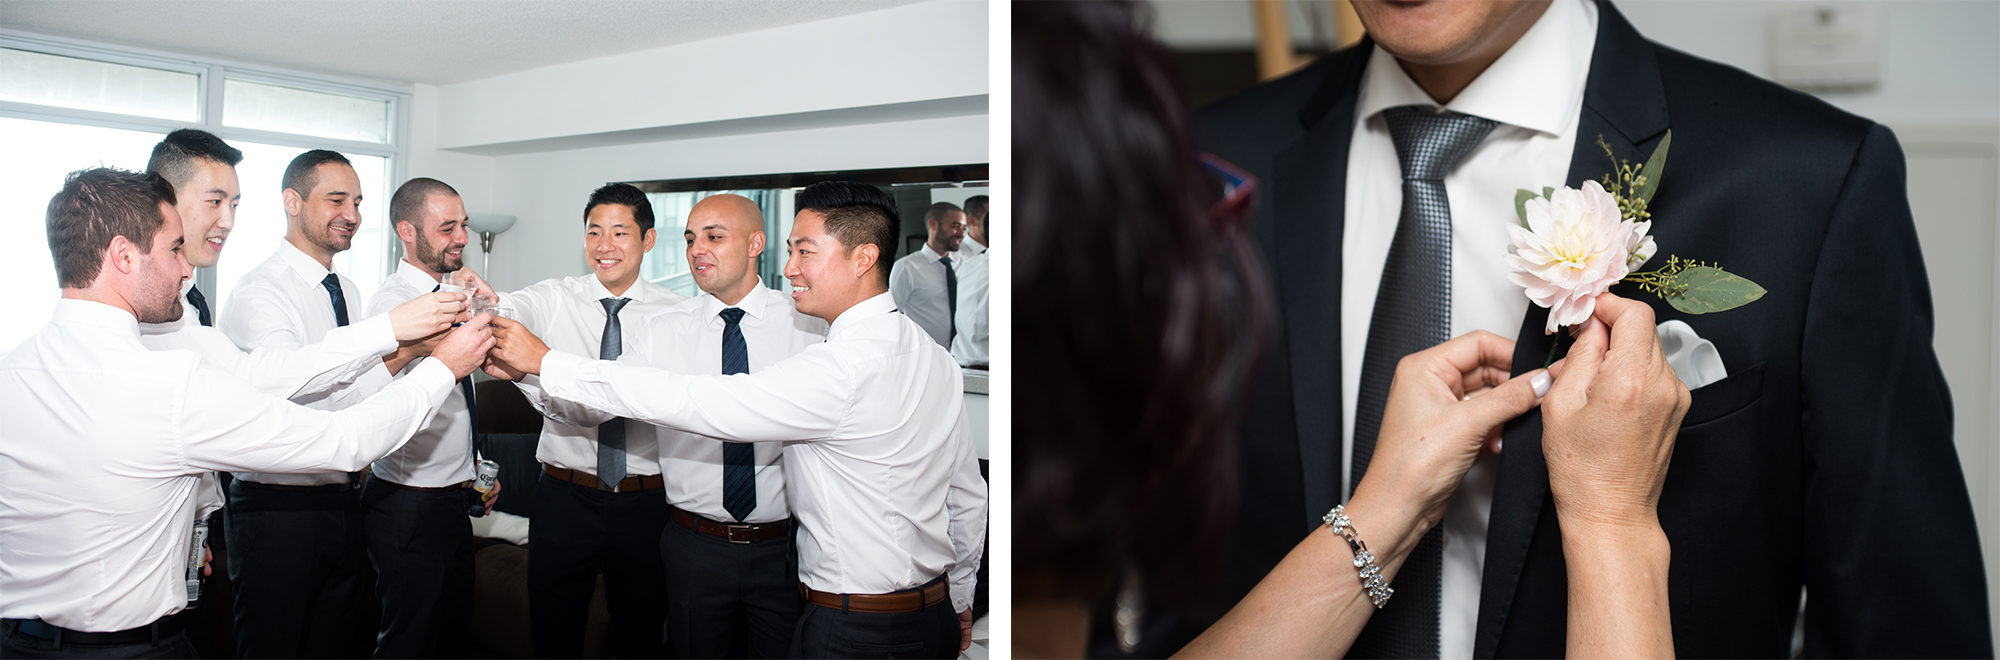 Groomsmen Groom Toast Boutonniere Zsuzsi Pal Photography Toronto Wedding